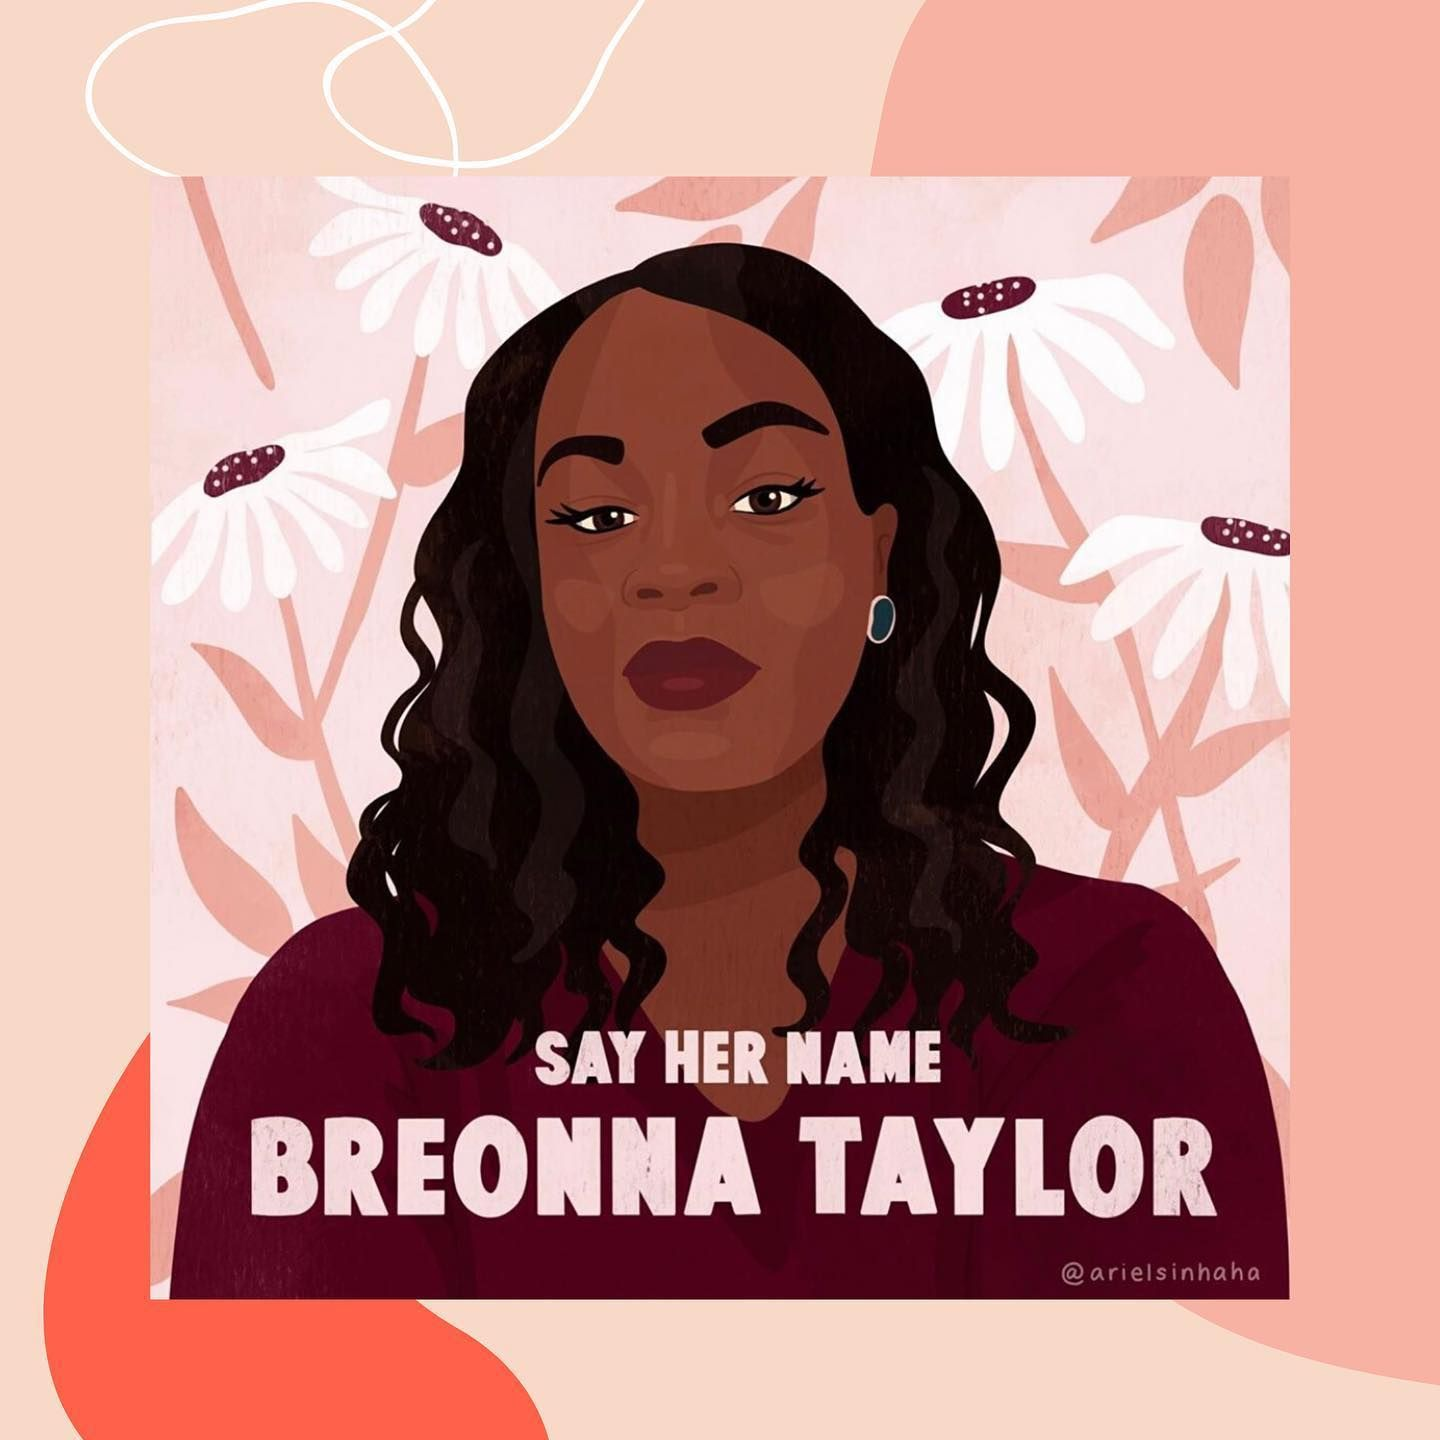 Today Should Have Been Breonna Taylor S 27th Birthday Her Killers Have Still Not Been Charged Visit The Li In 2020 Black Lives Matter Art Say Her Name Breonna Taylor